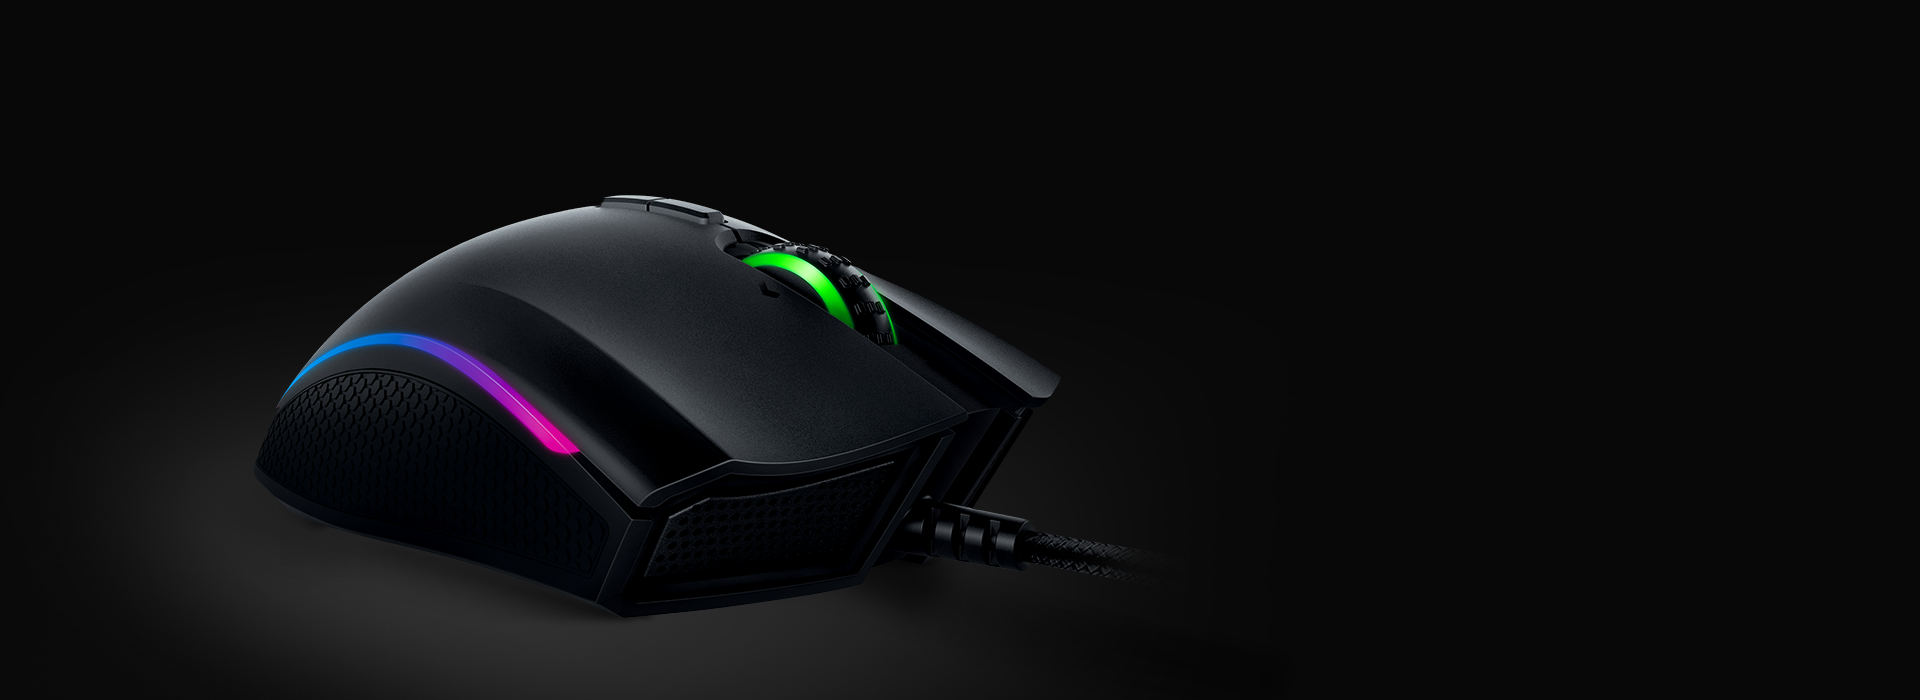 http://assets.razerzone.com/eeimages/products/22294/chroma-02.png